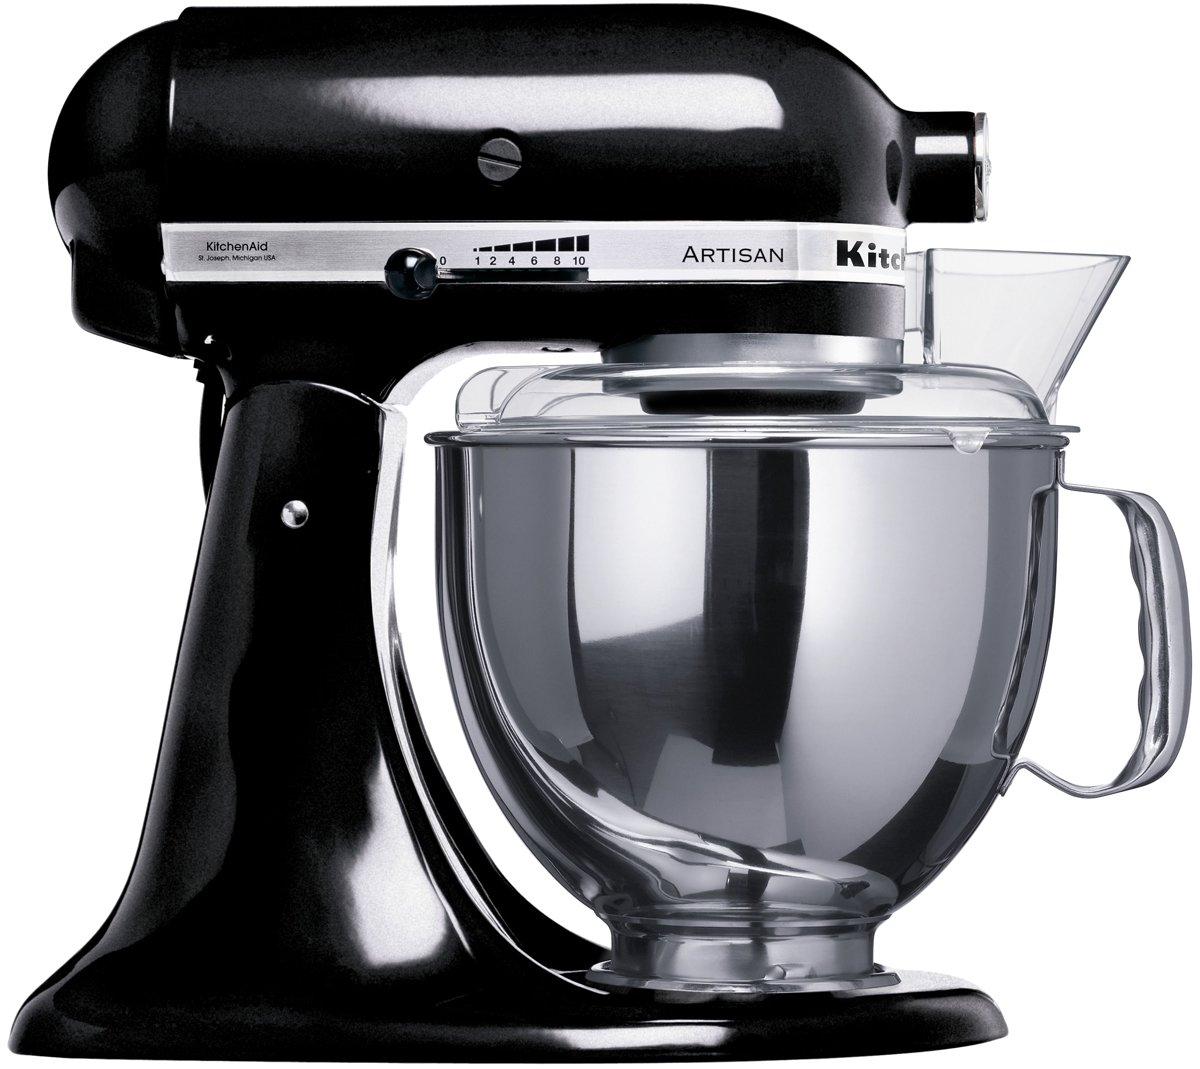 New Kitchenaid 91020 Artisan Ksm150 Stand Mixer